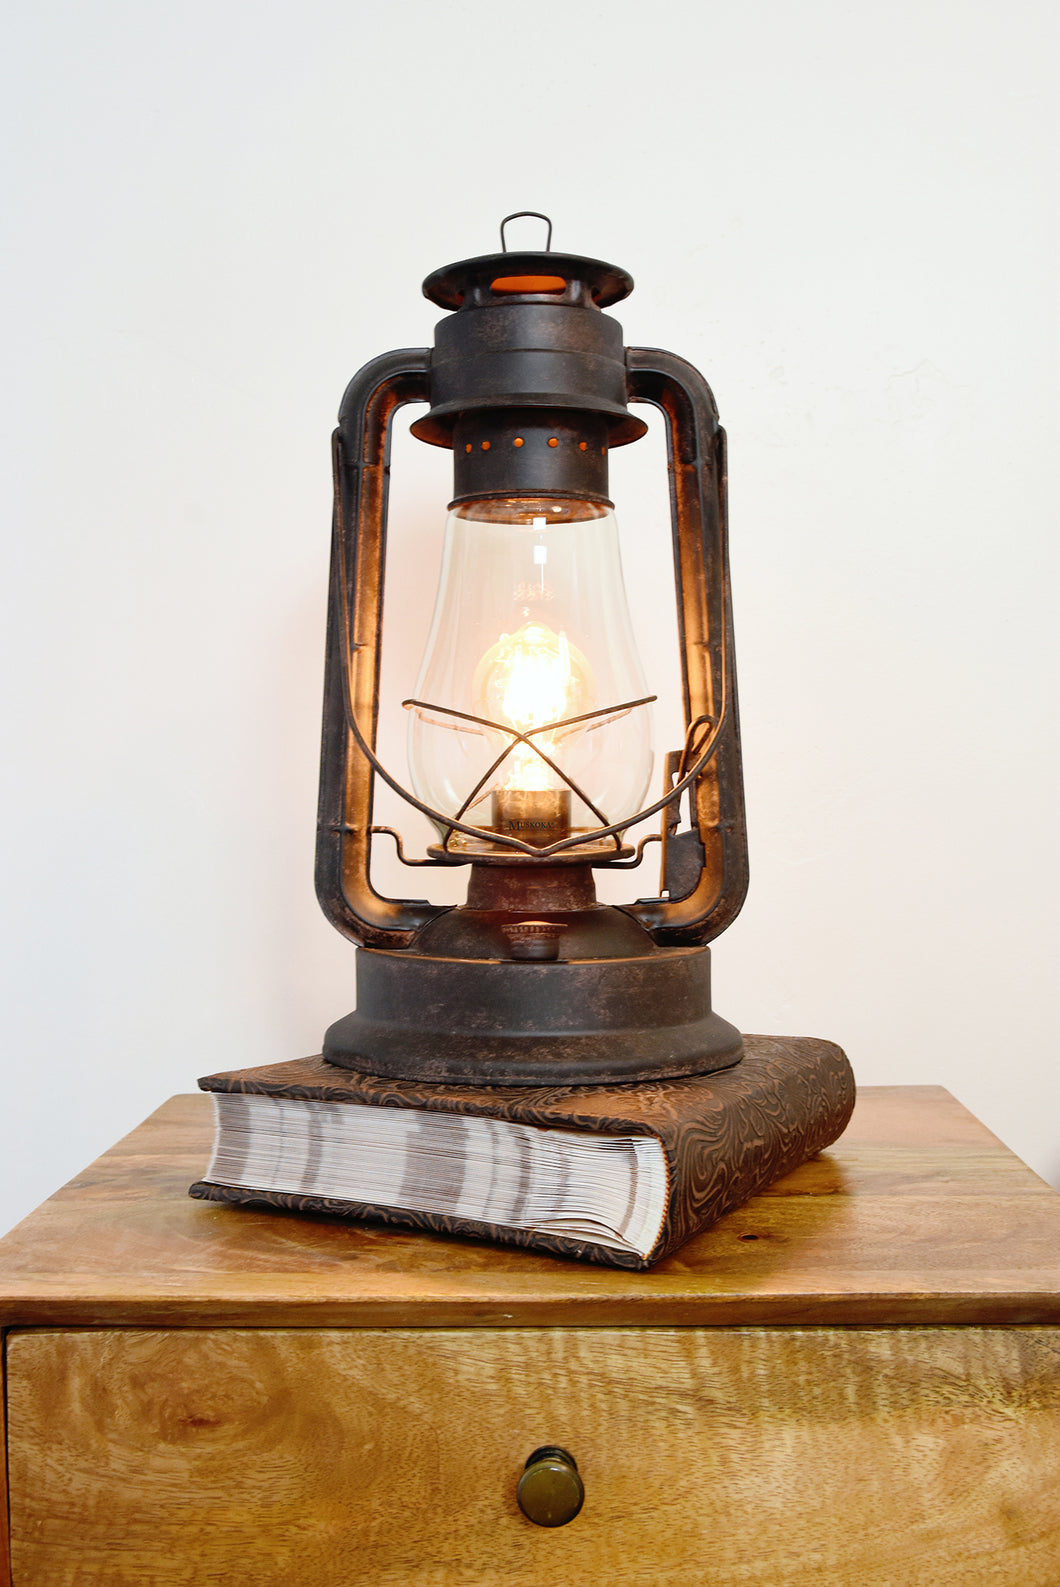 Table lamp Lantern, lantern, rustic lamp, muskoka lifestyle products